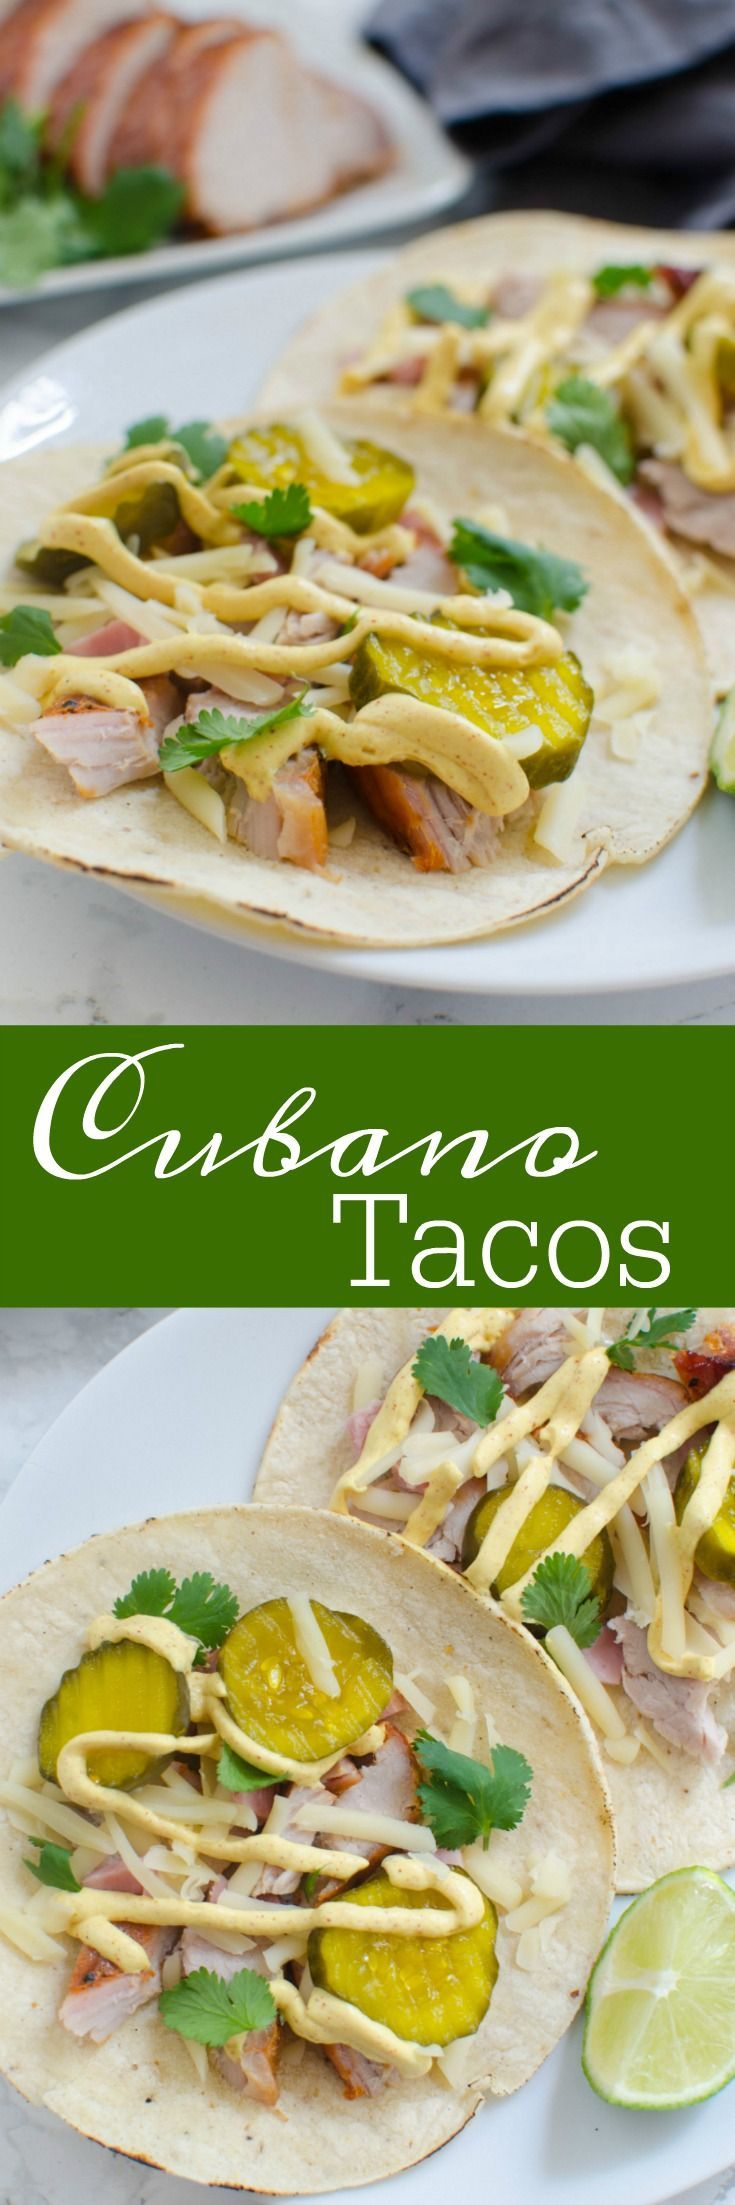 Cubano Tacos - everything you love about a Cuban sandwich as a taco! Perfect way to switch up Taco Tuesday! #RealFlavorRealFast AD